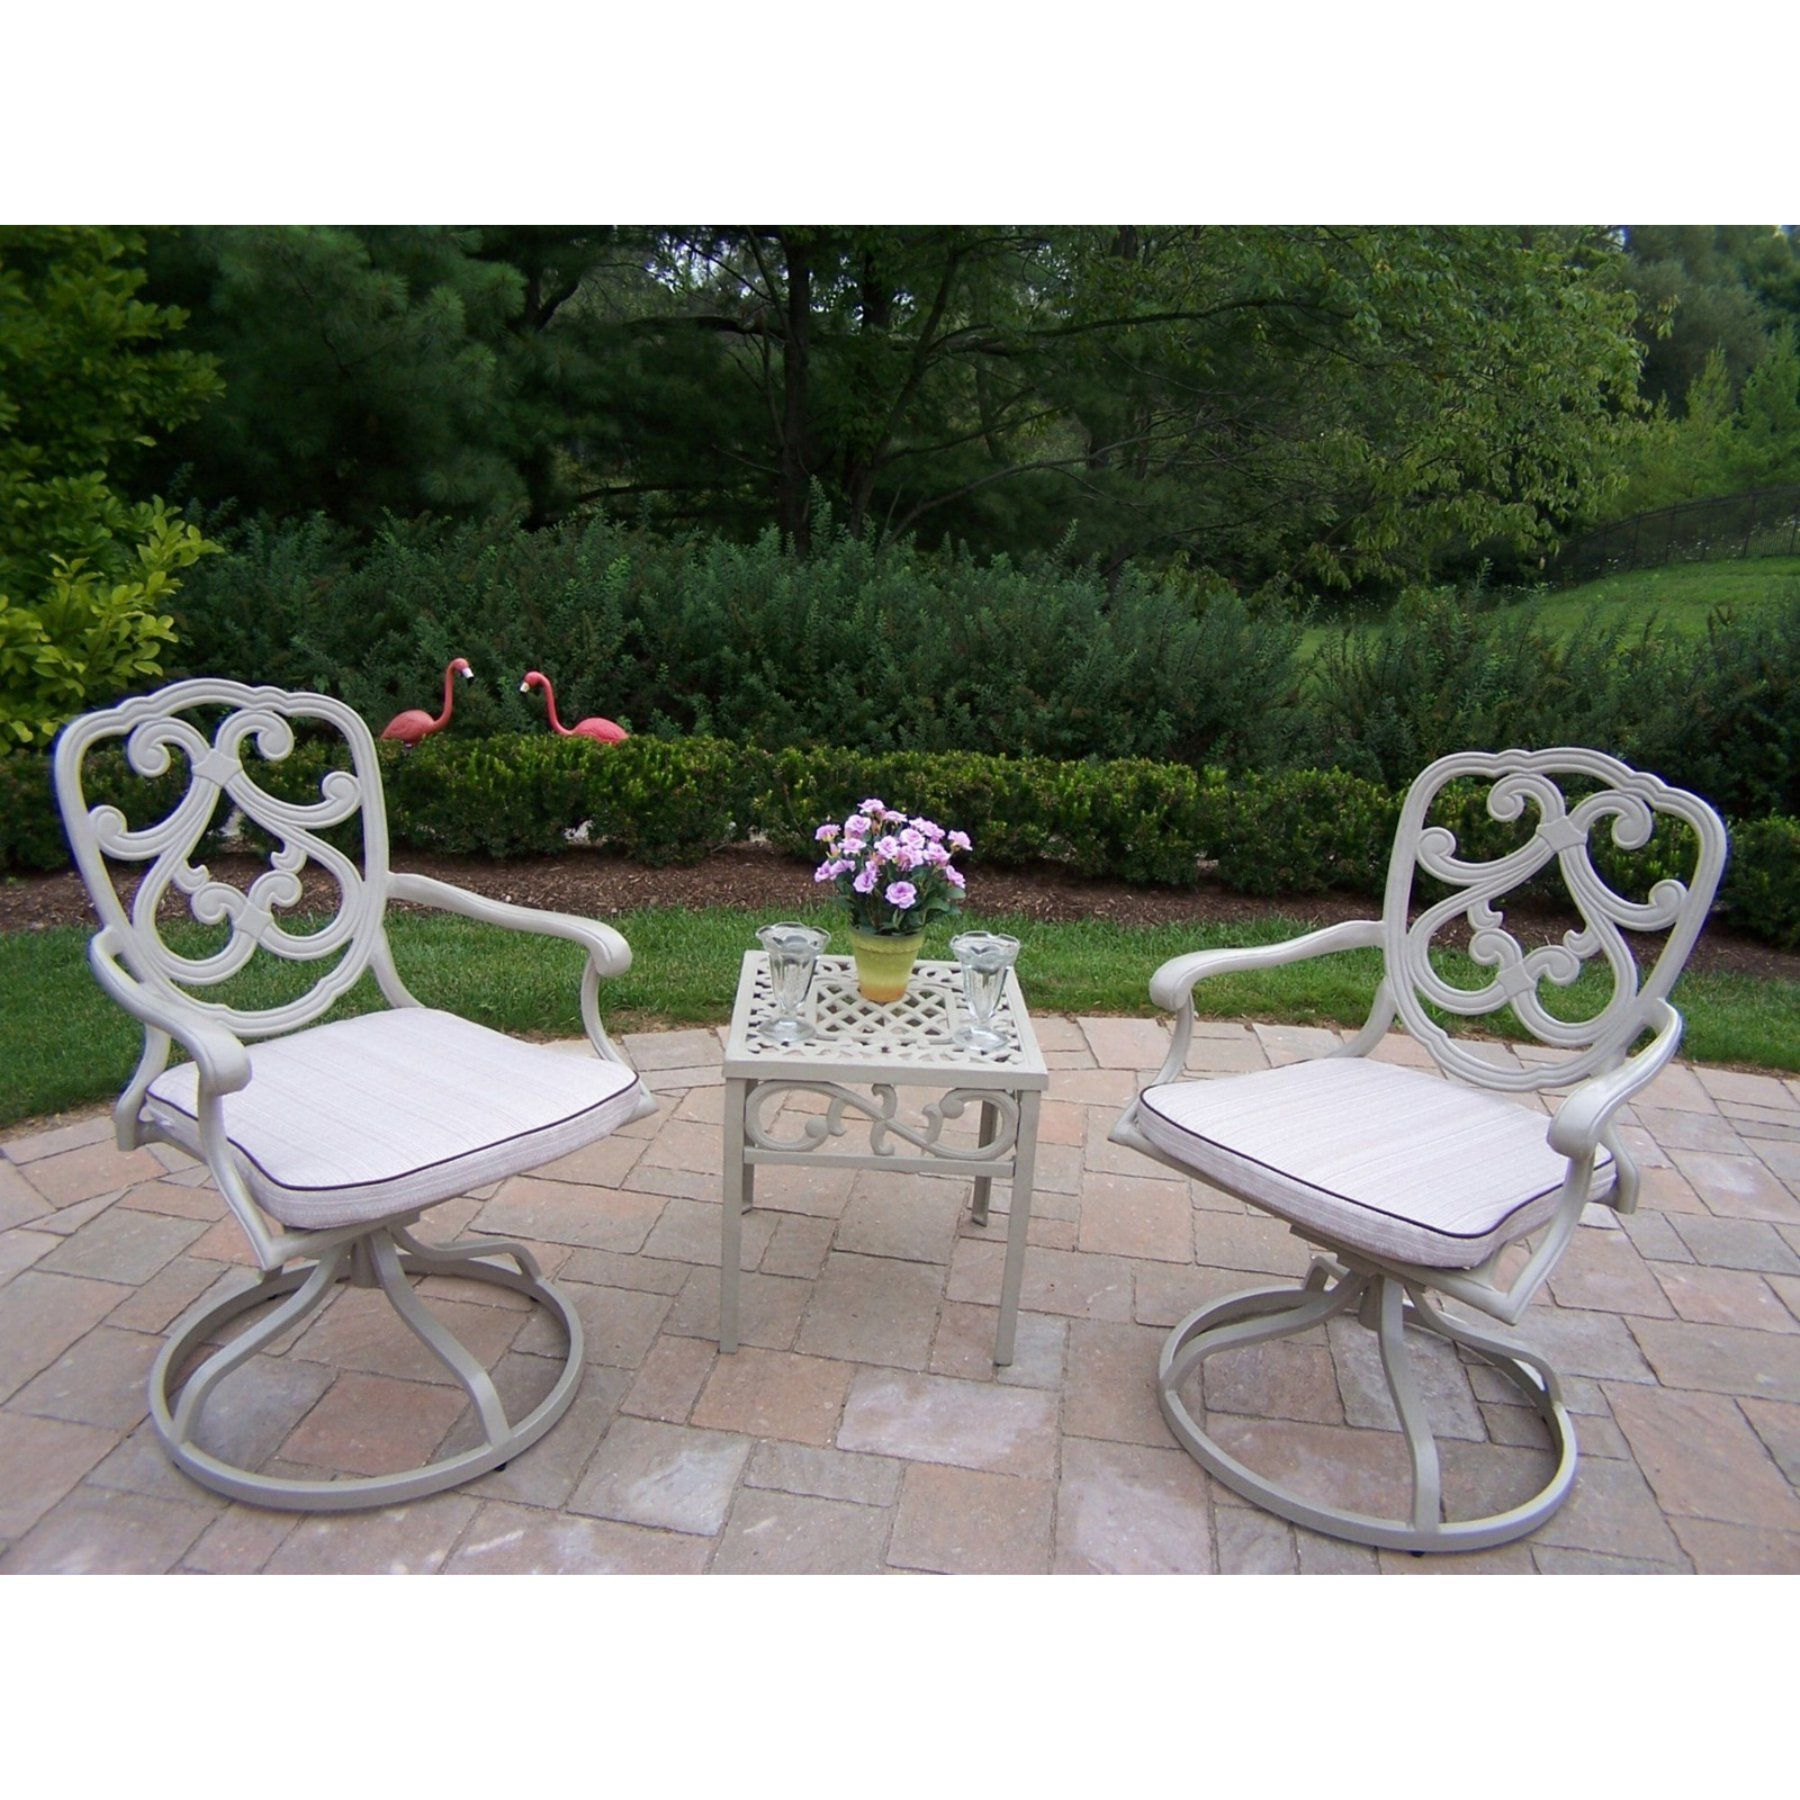 Outdoor Oakland Living Pacifica Cast Aluminum Swivel ... on Oakland Living Patio Sets id=99743